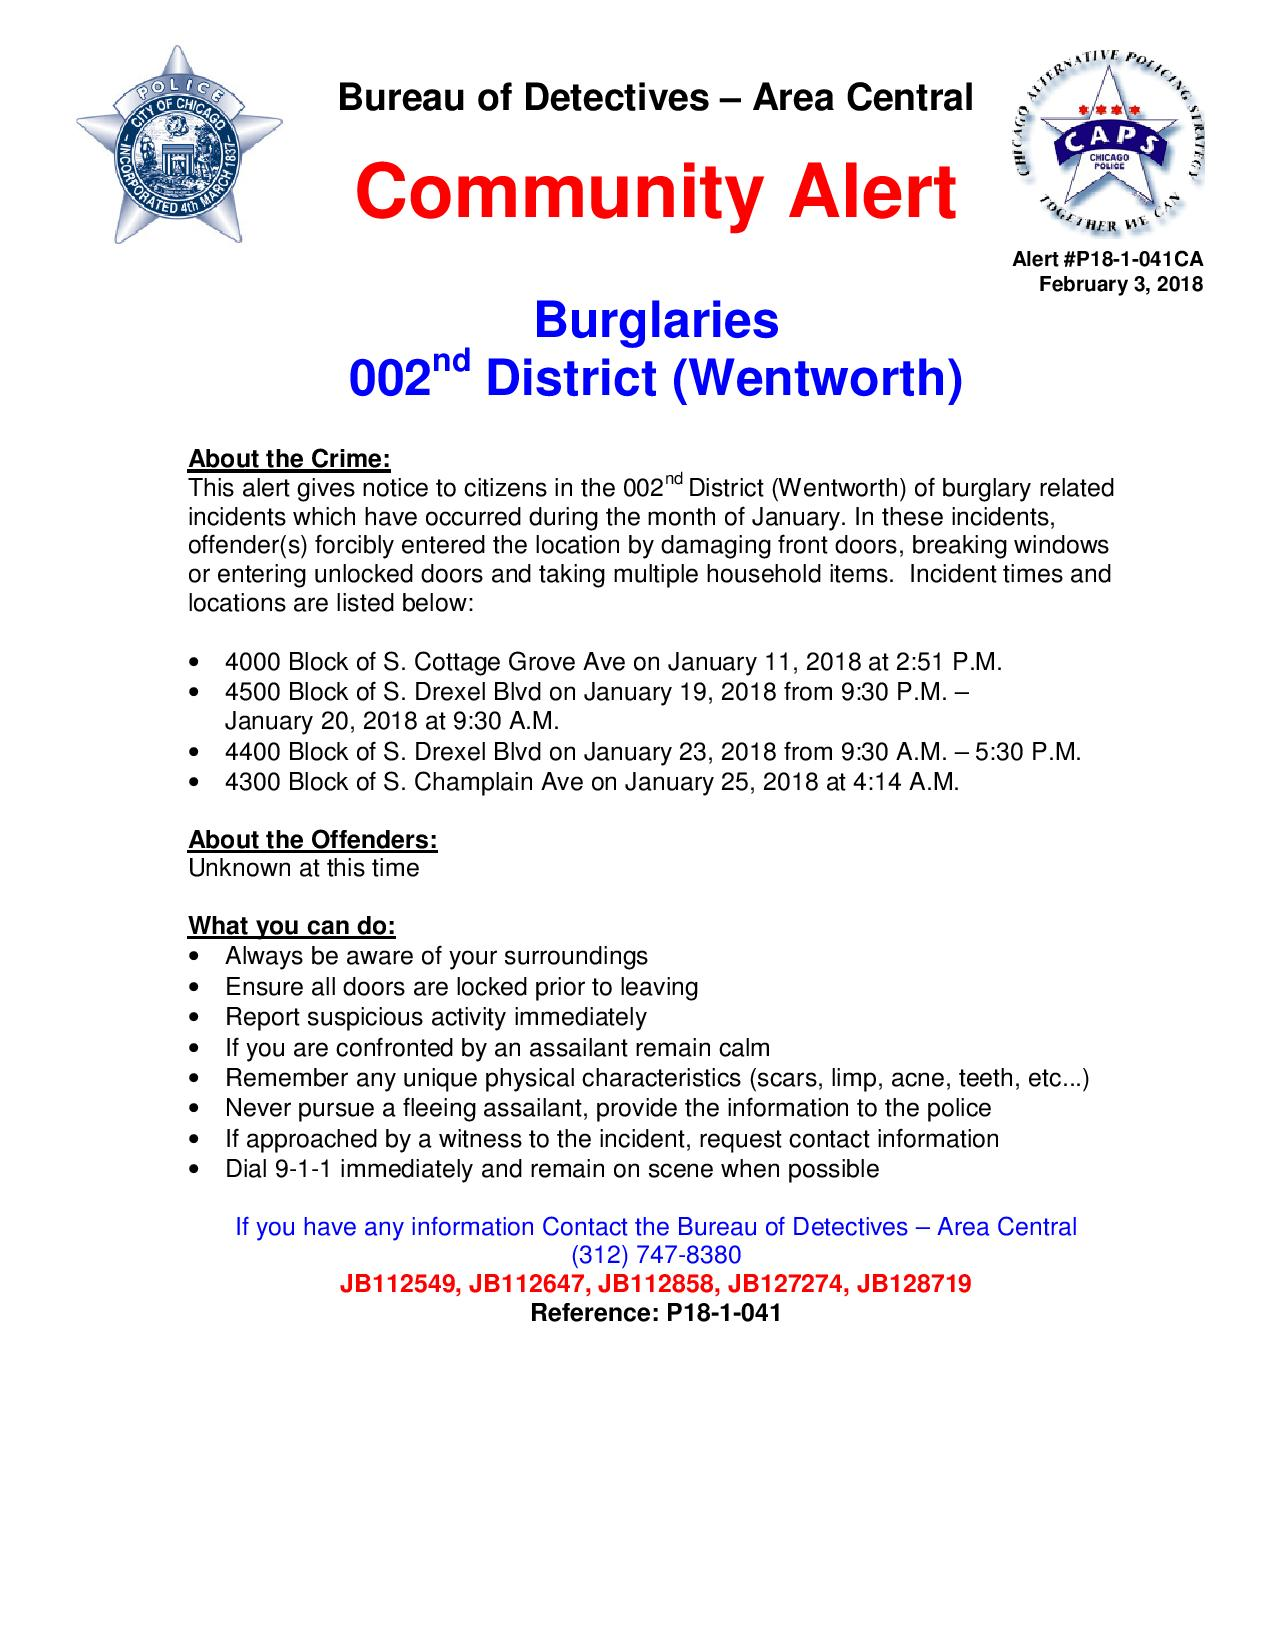 03 Feb 18-Community Alert-2nd District Burglaries P18-1-041-page-001